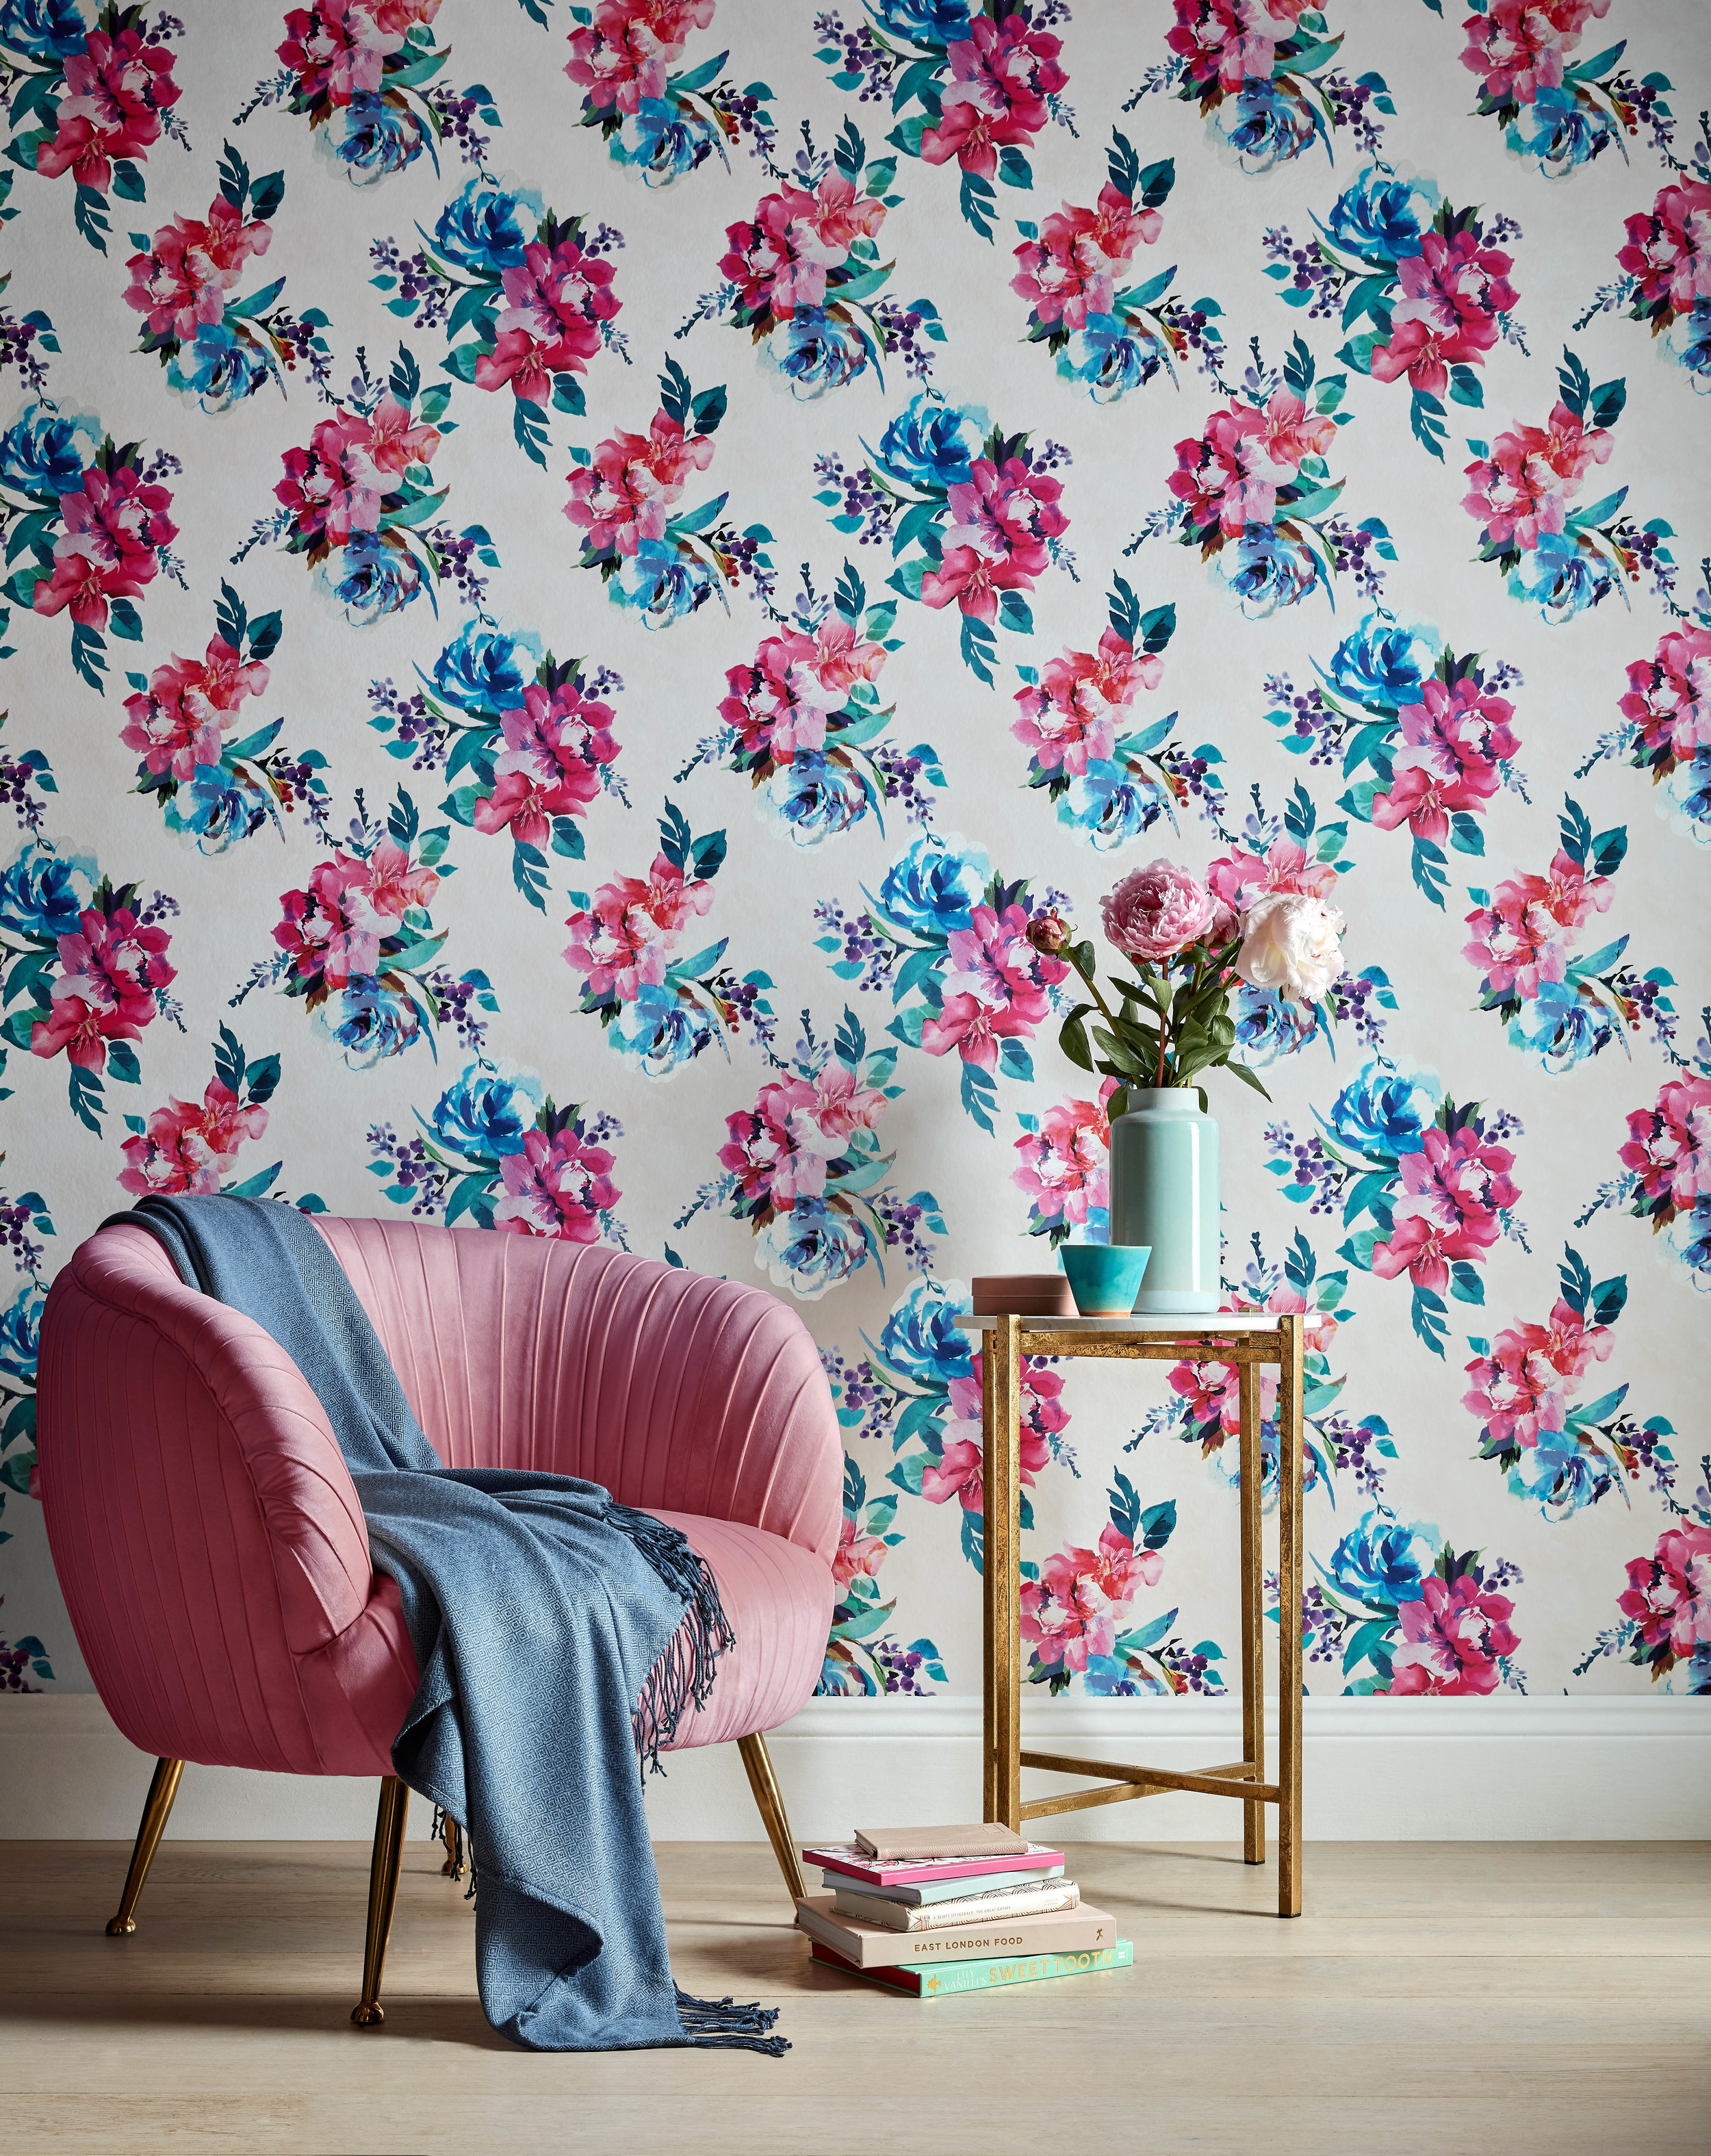 Accessorize Amelie Floral Wallpaper - Cream Multi copy.jpg